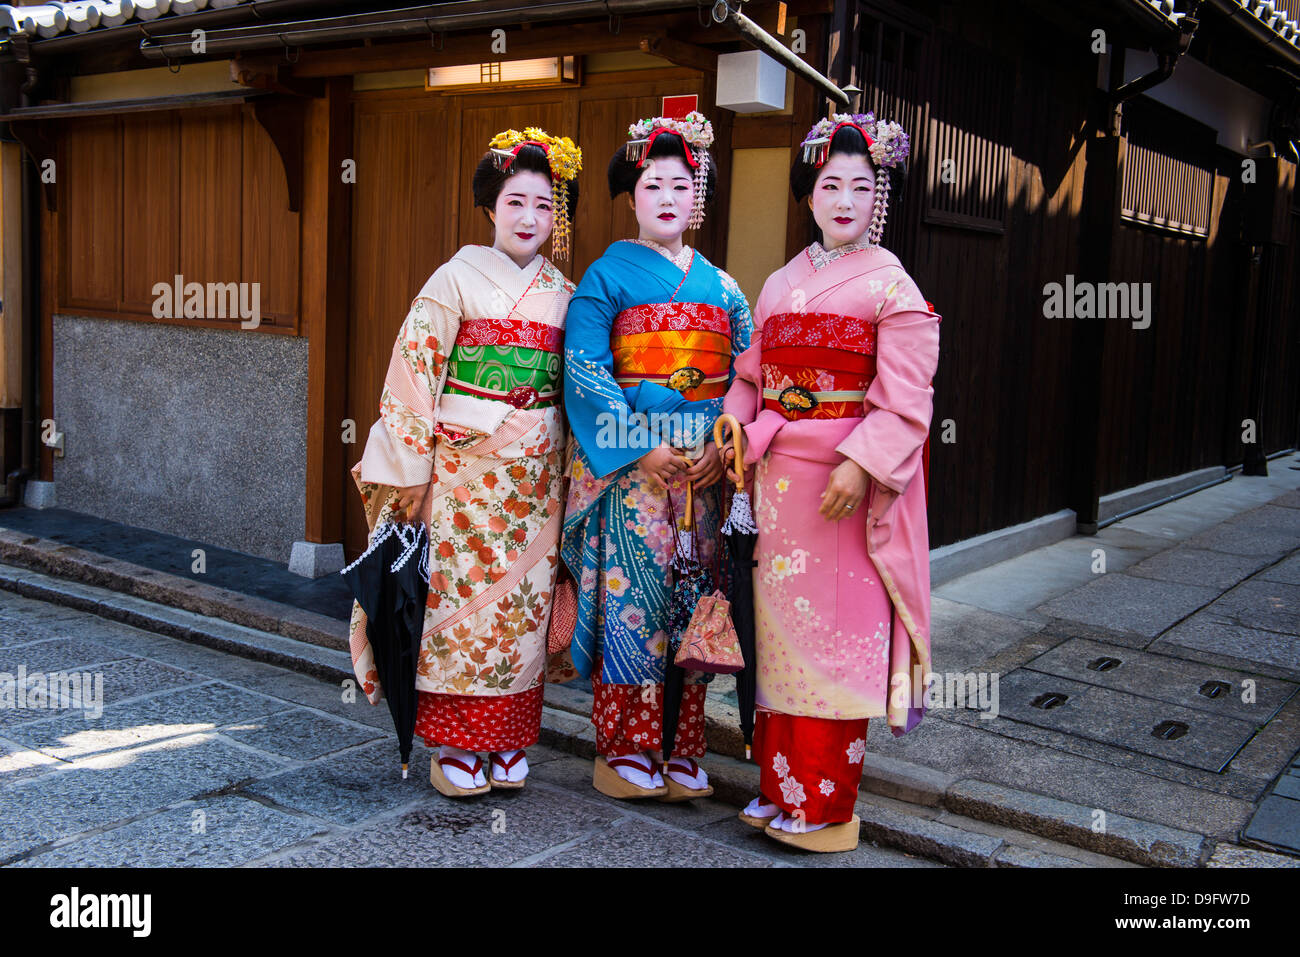 Traditionally dressed Geishas in the old quarter of Kyoto, Japan - Stock Image